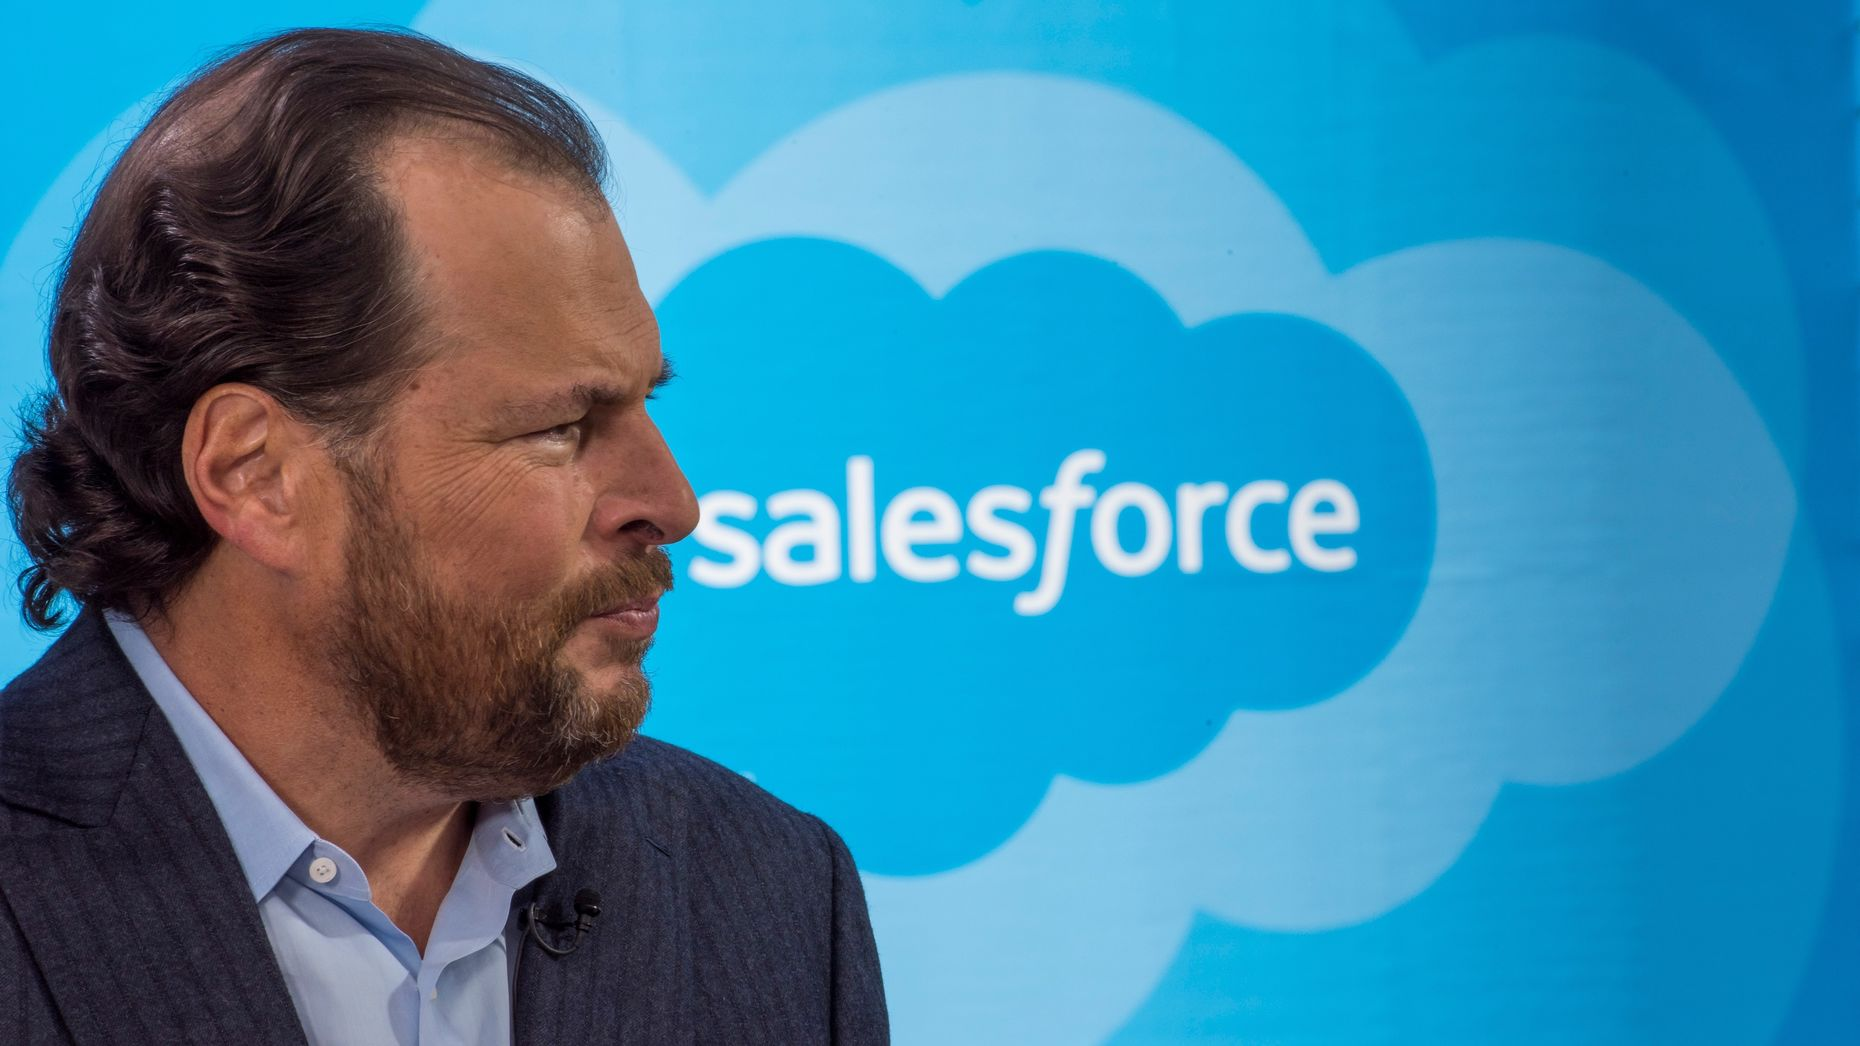 Salesforce CEO Marc Benioff. Photo by Bloomberg.